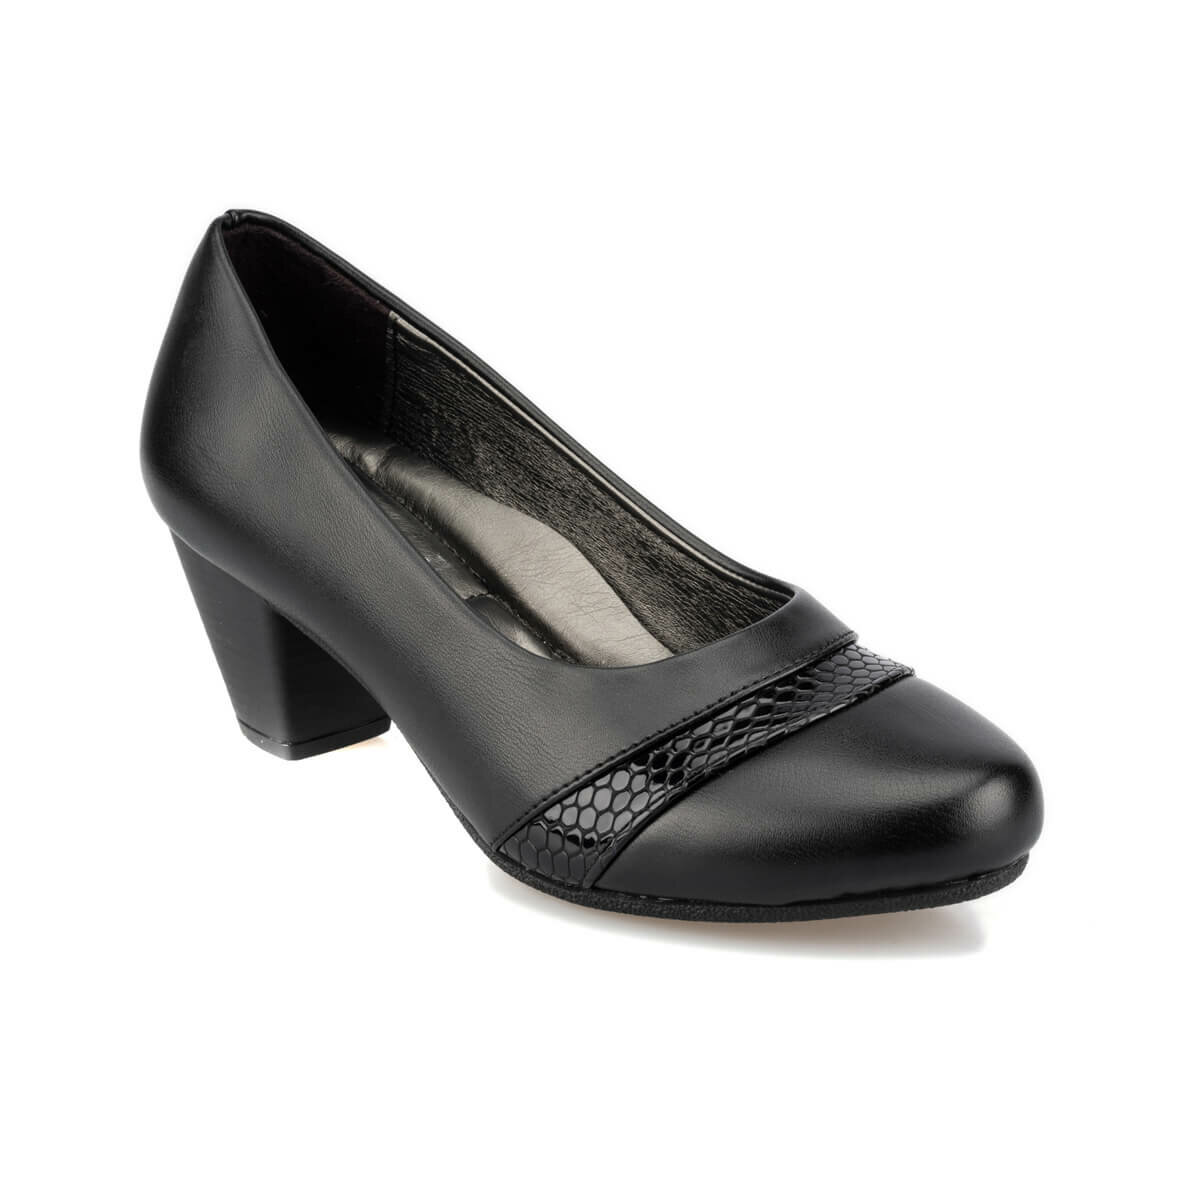 FLO 92.158111.Z Black Women Gova Shoes Polaris